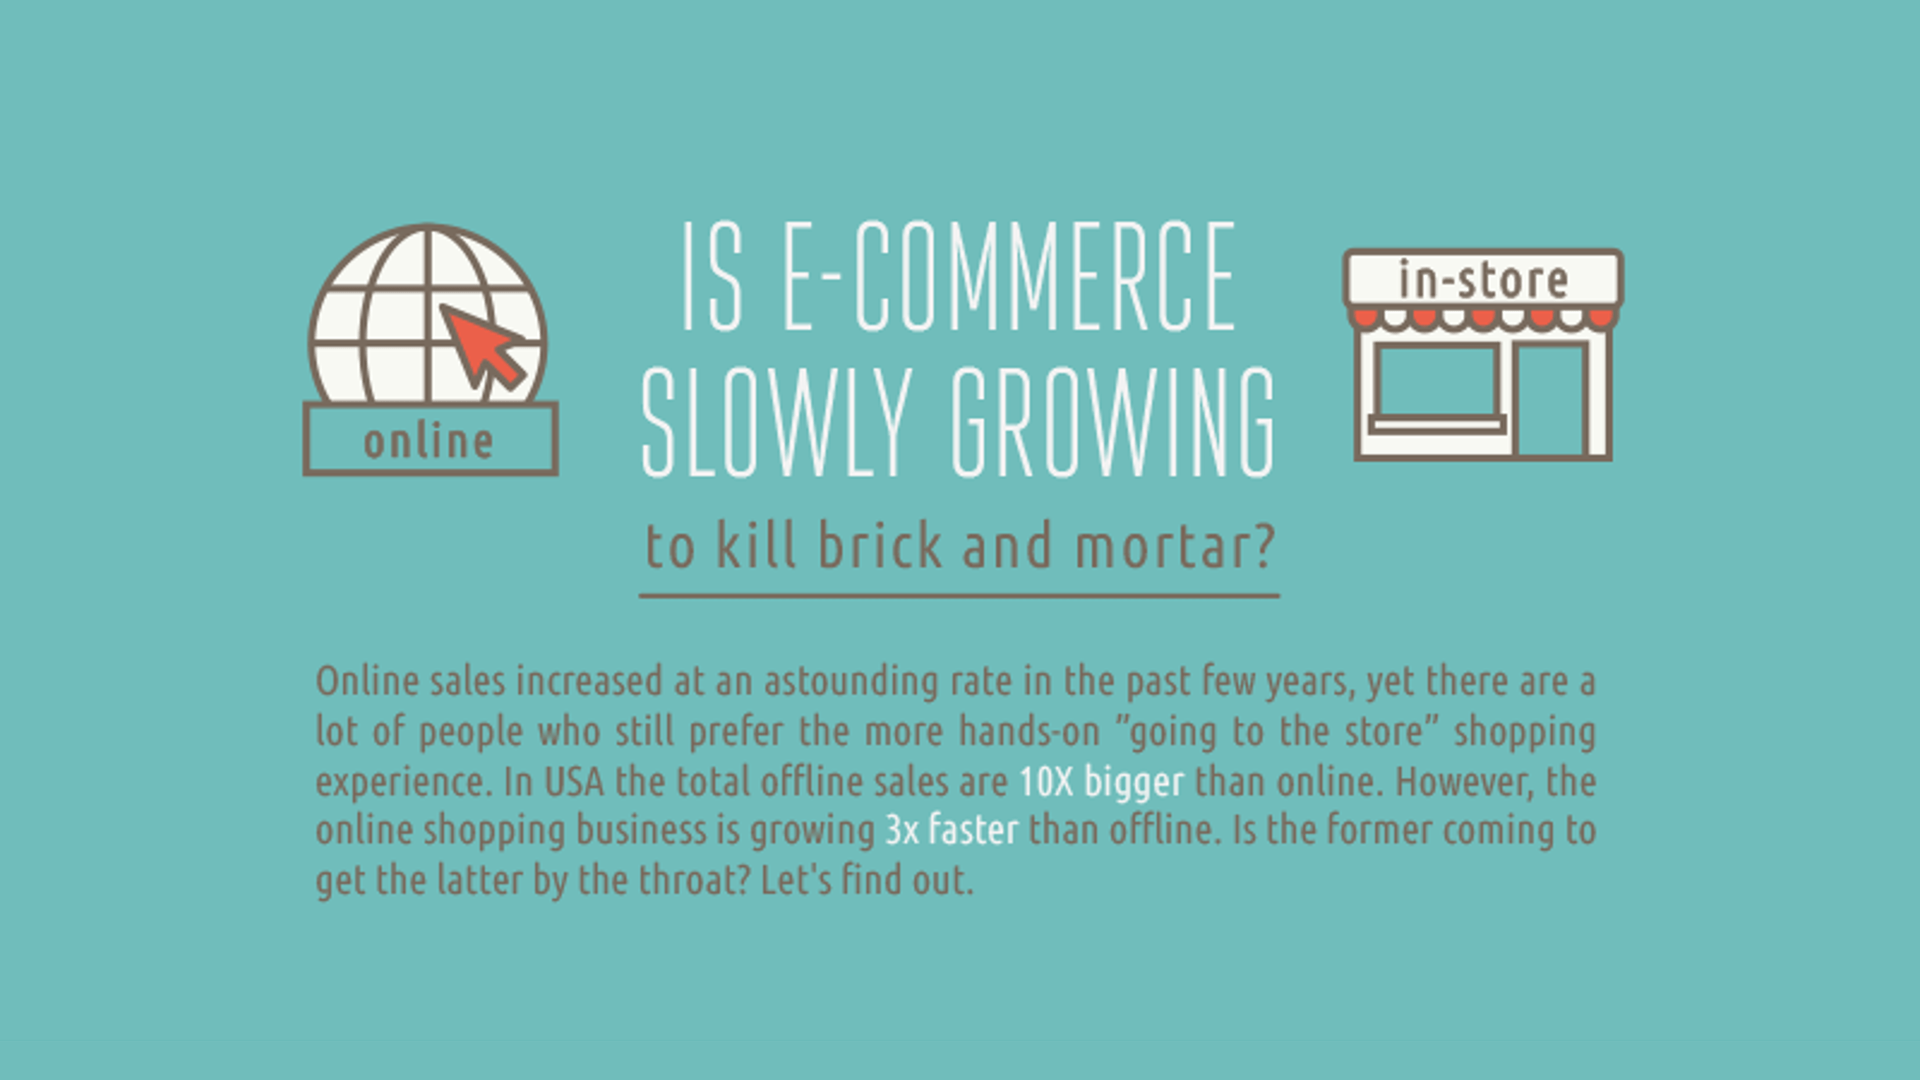 Is E-Commerce Slowly Growing?